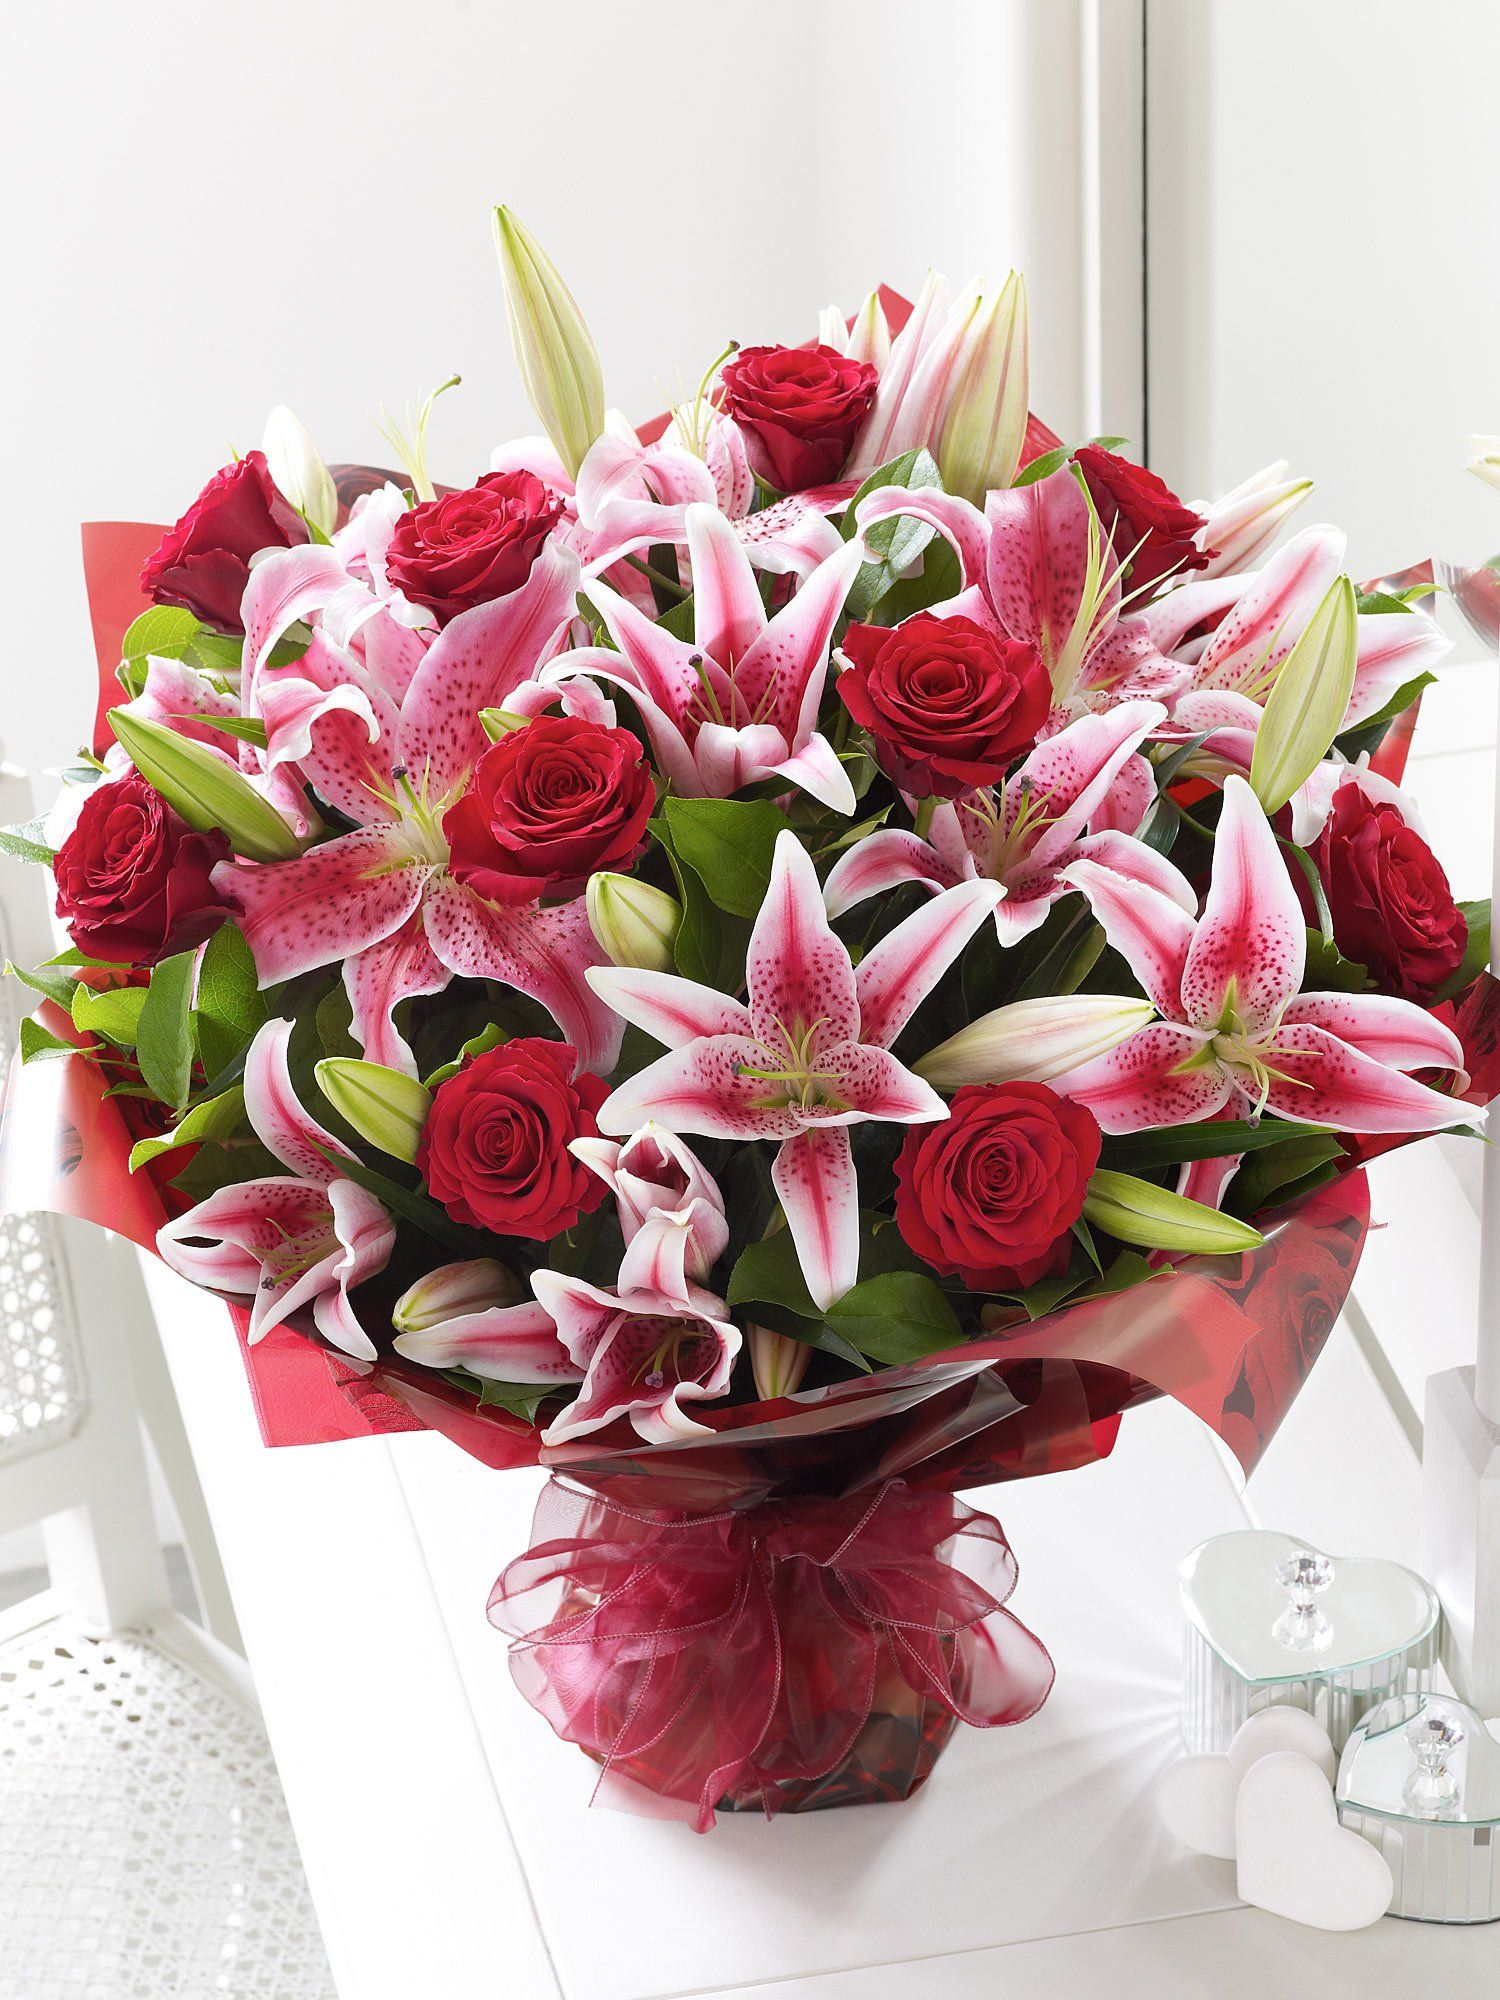 A mix of romantic red roses and sweet smelling Lillies